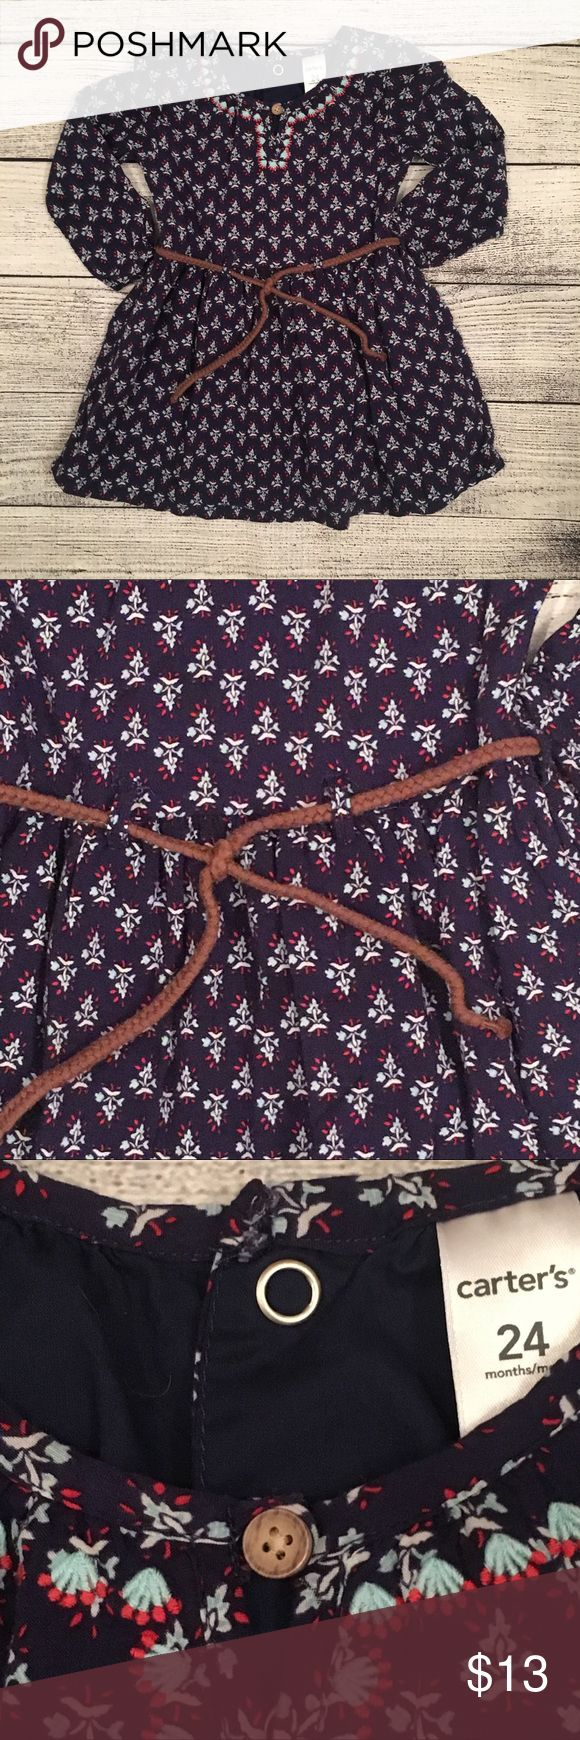 Carter's dress Navy lined dress with floral detail. Adorable removable rope belt. Size 24 months Carter's Dresses